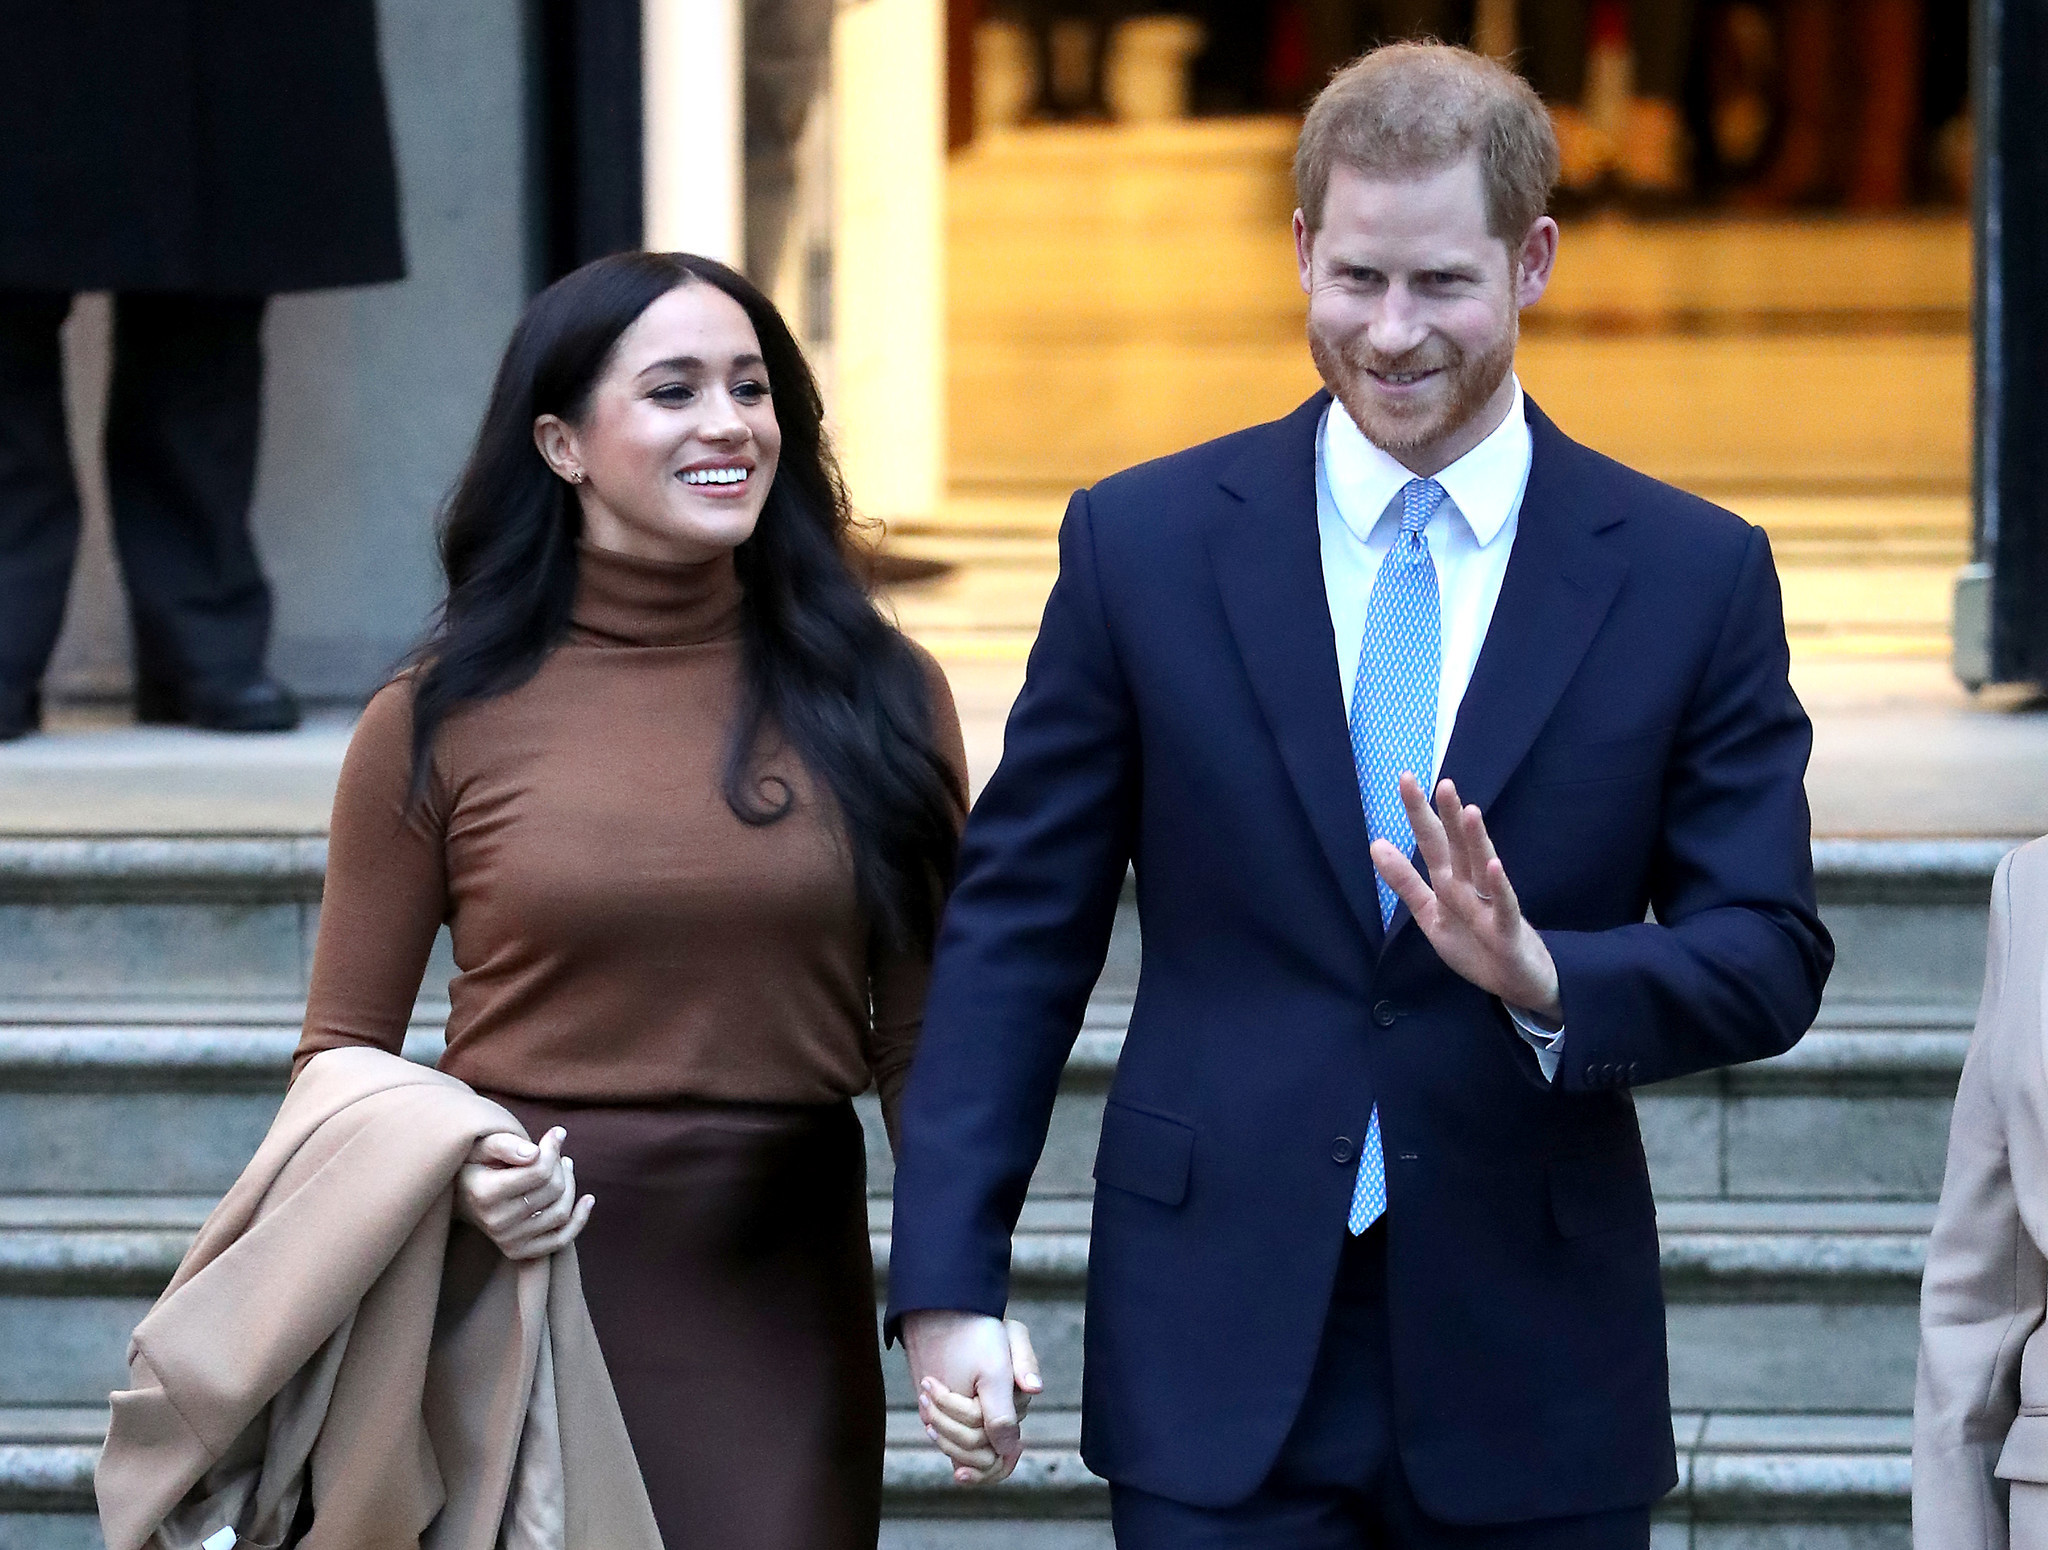 Prince Harry and Meghan Markle announce they'll 'step back' as 'senior members of the Royal Family'